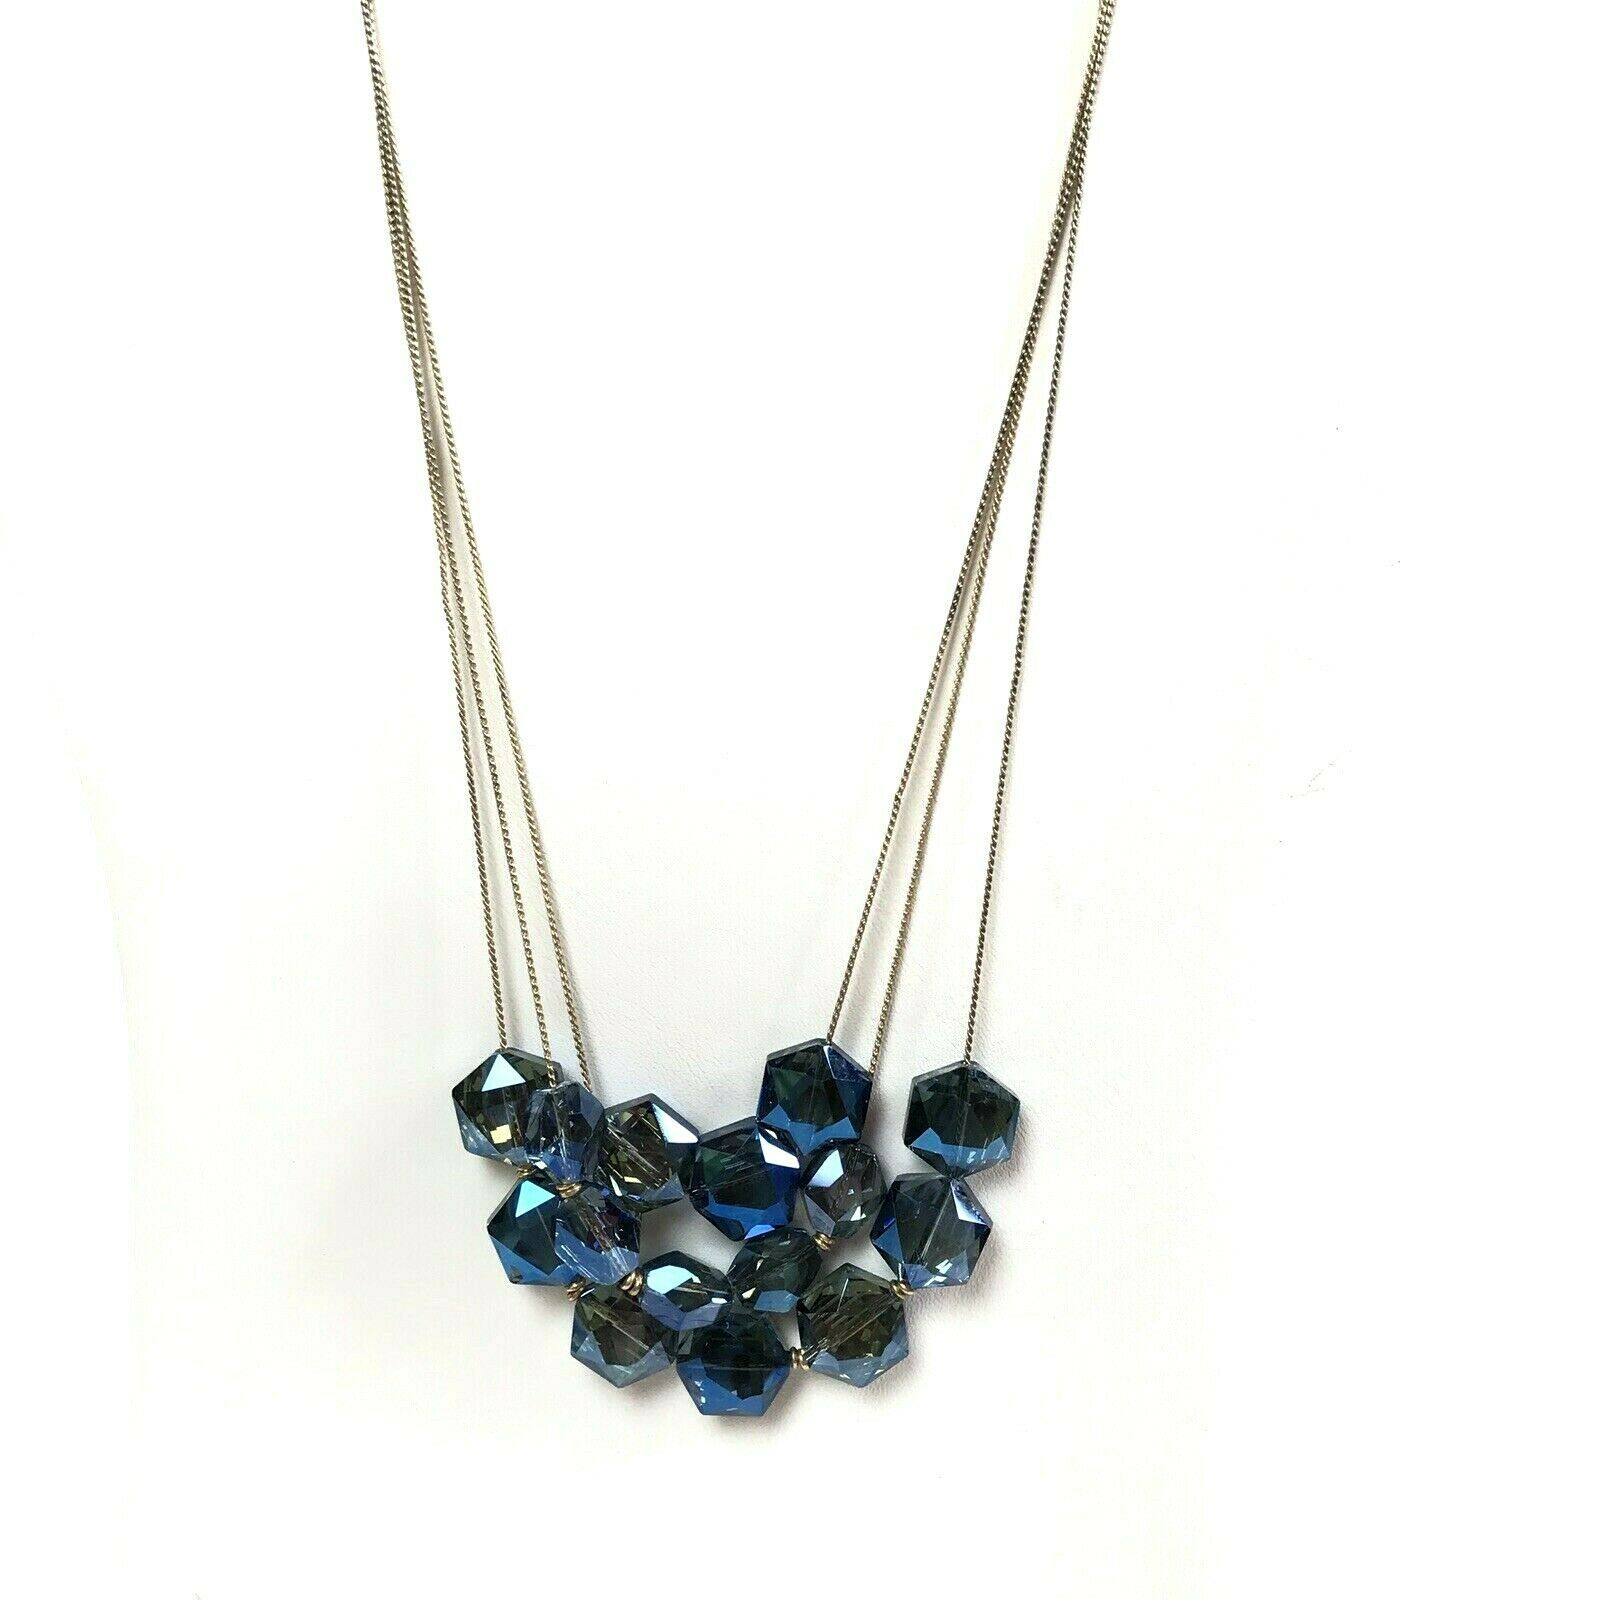 Kenneth Cole Necklace Blue Faceted Glass Strands Statement  - $9.89